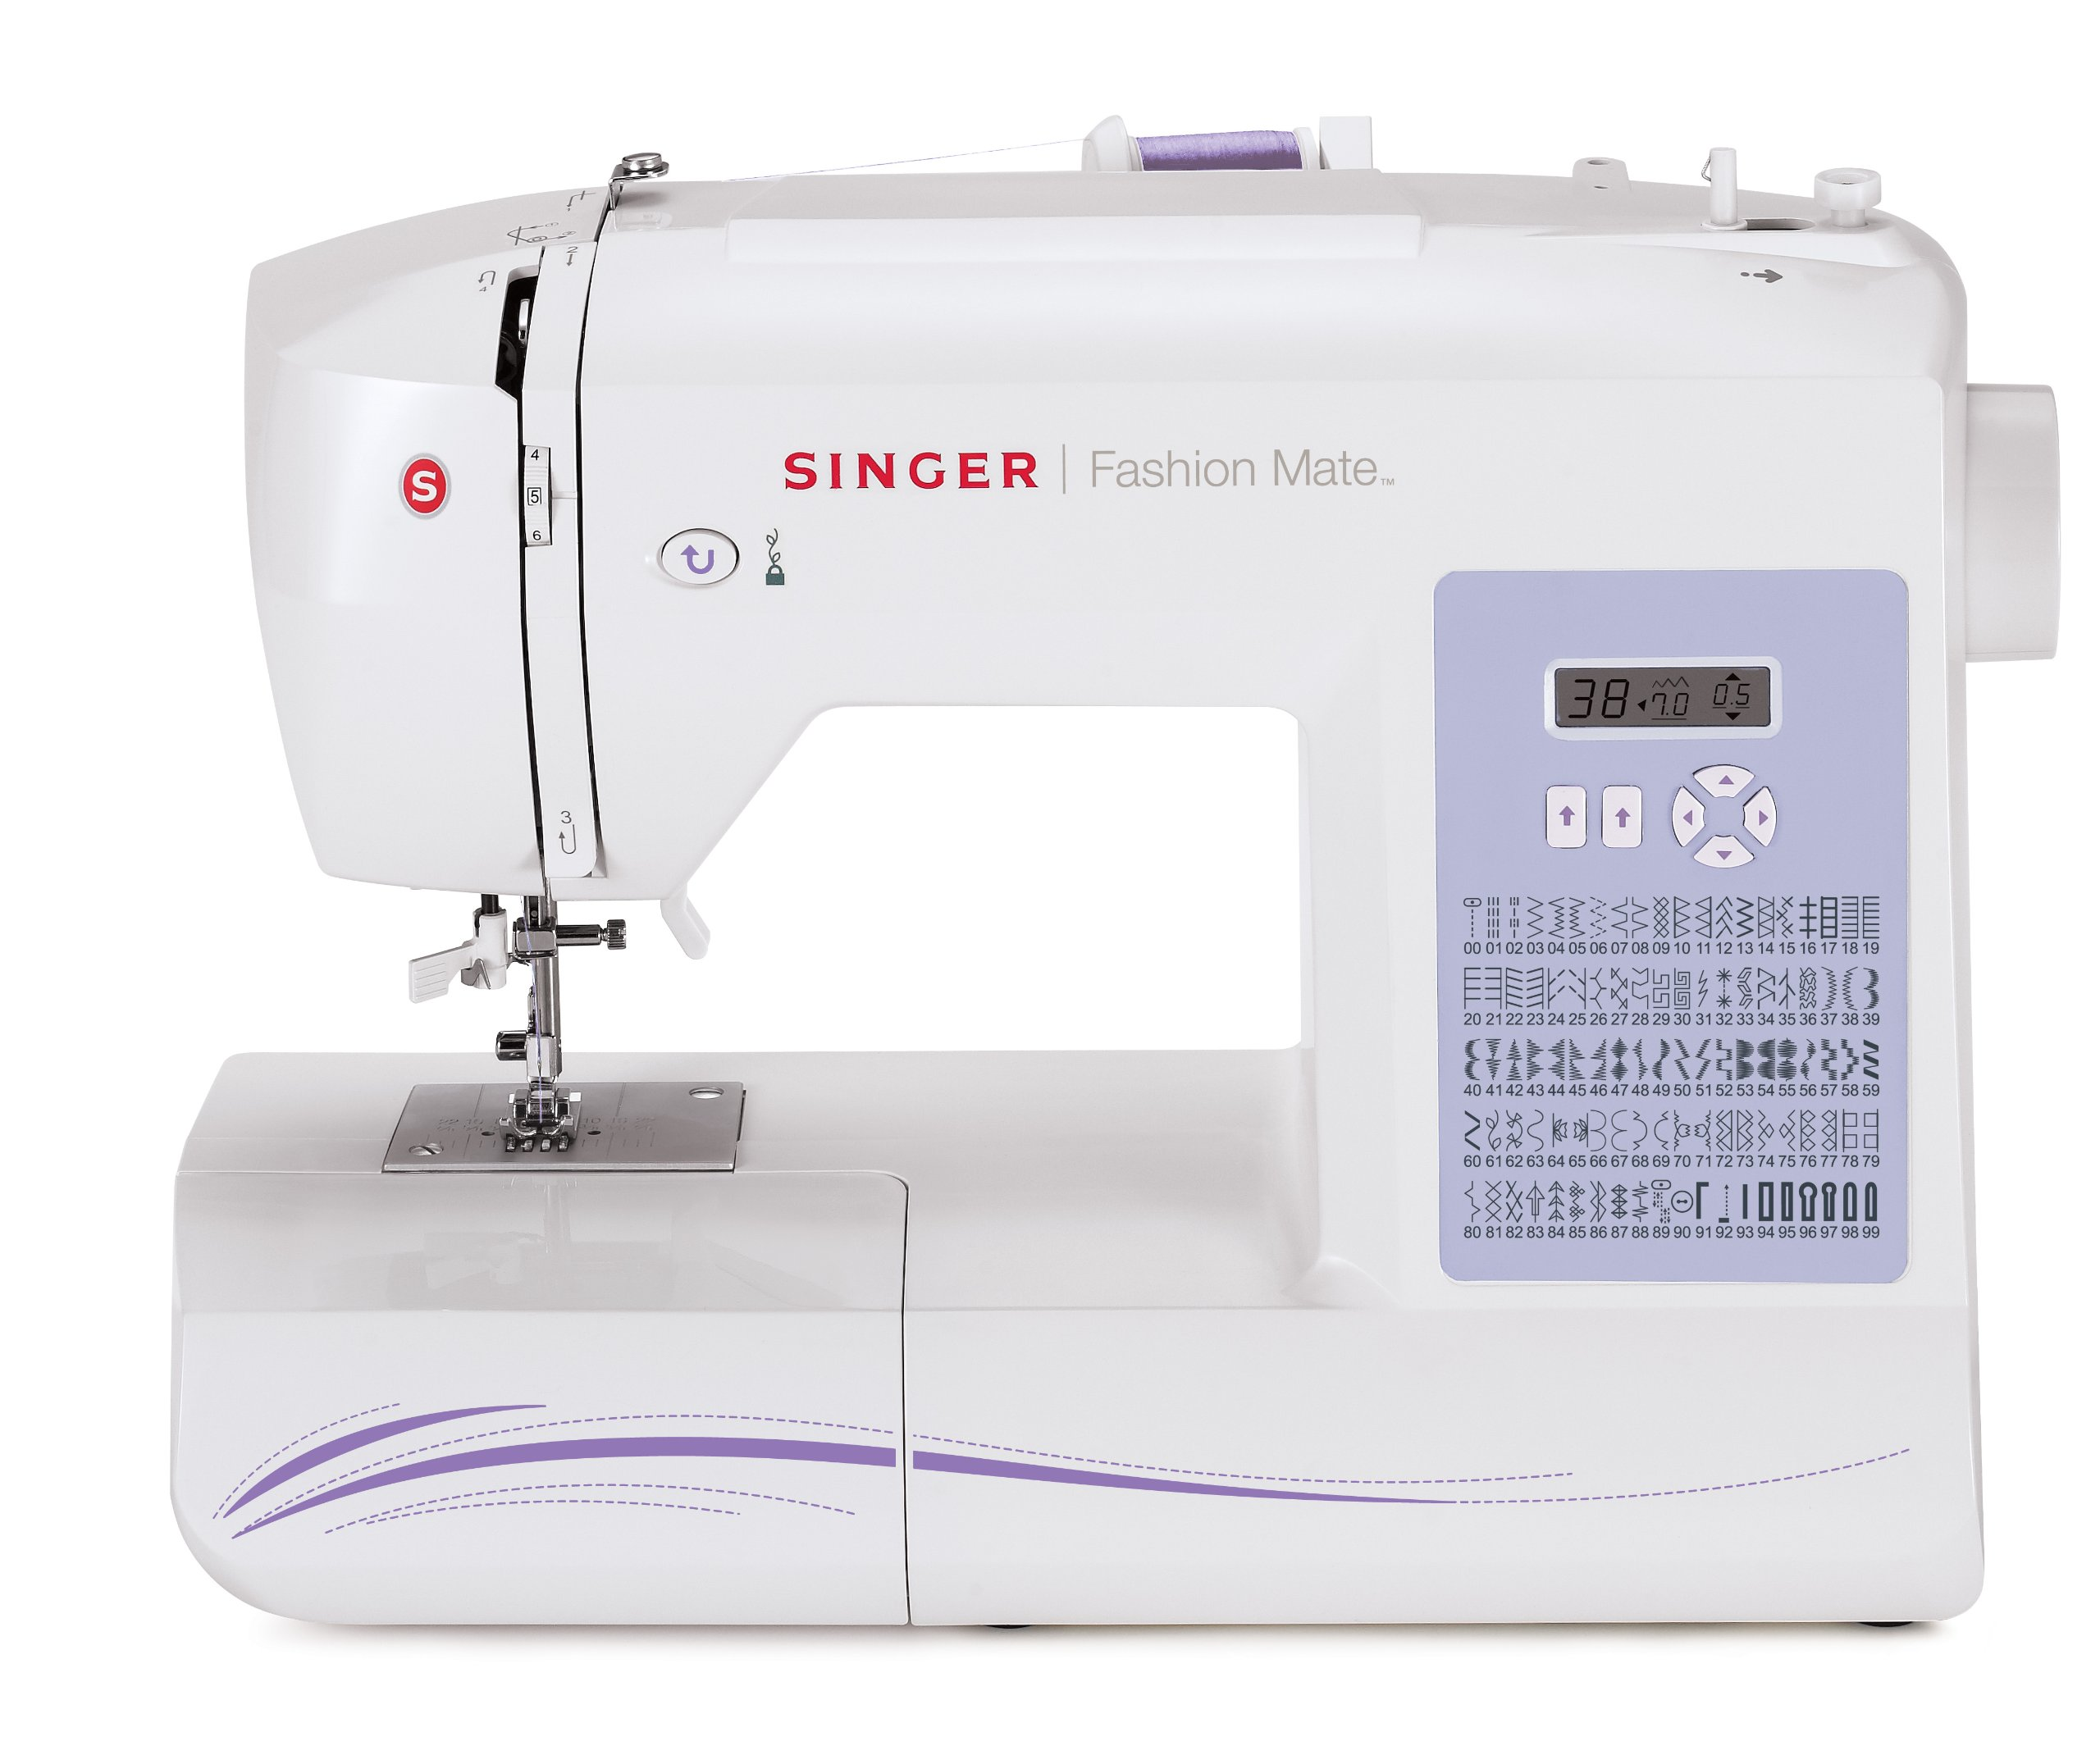 singer 5500 fashion mate sewing machine